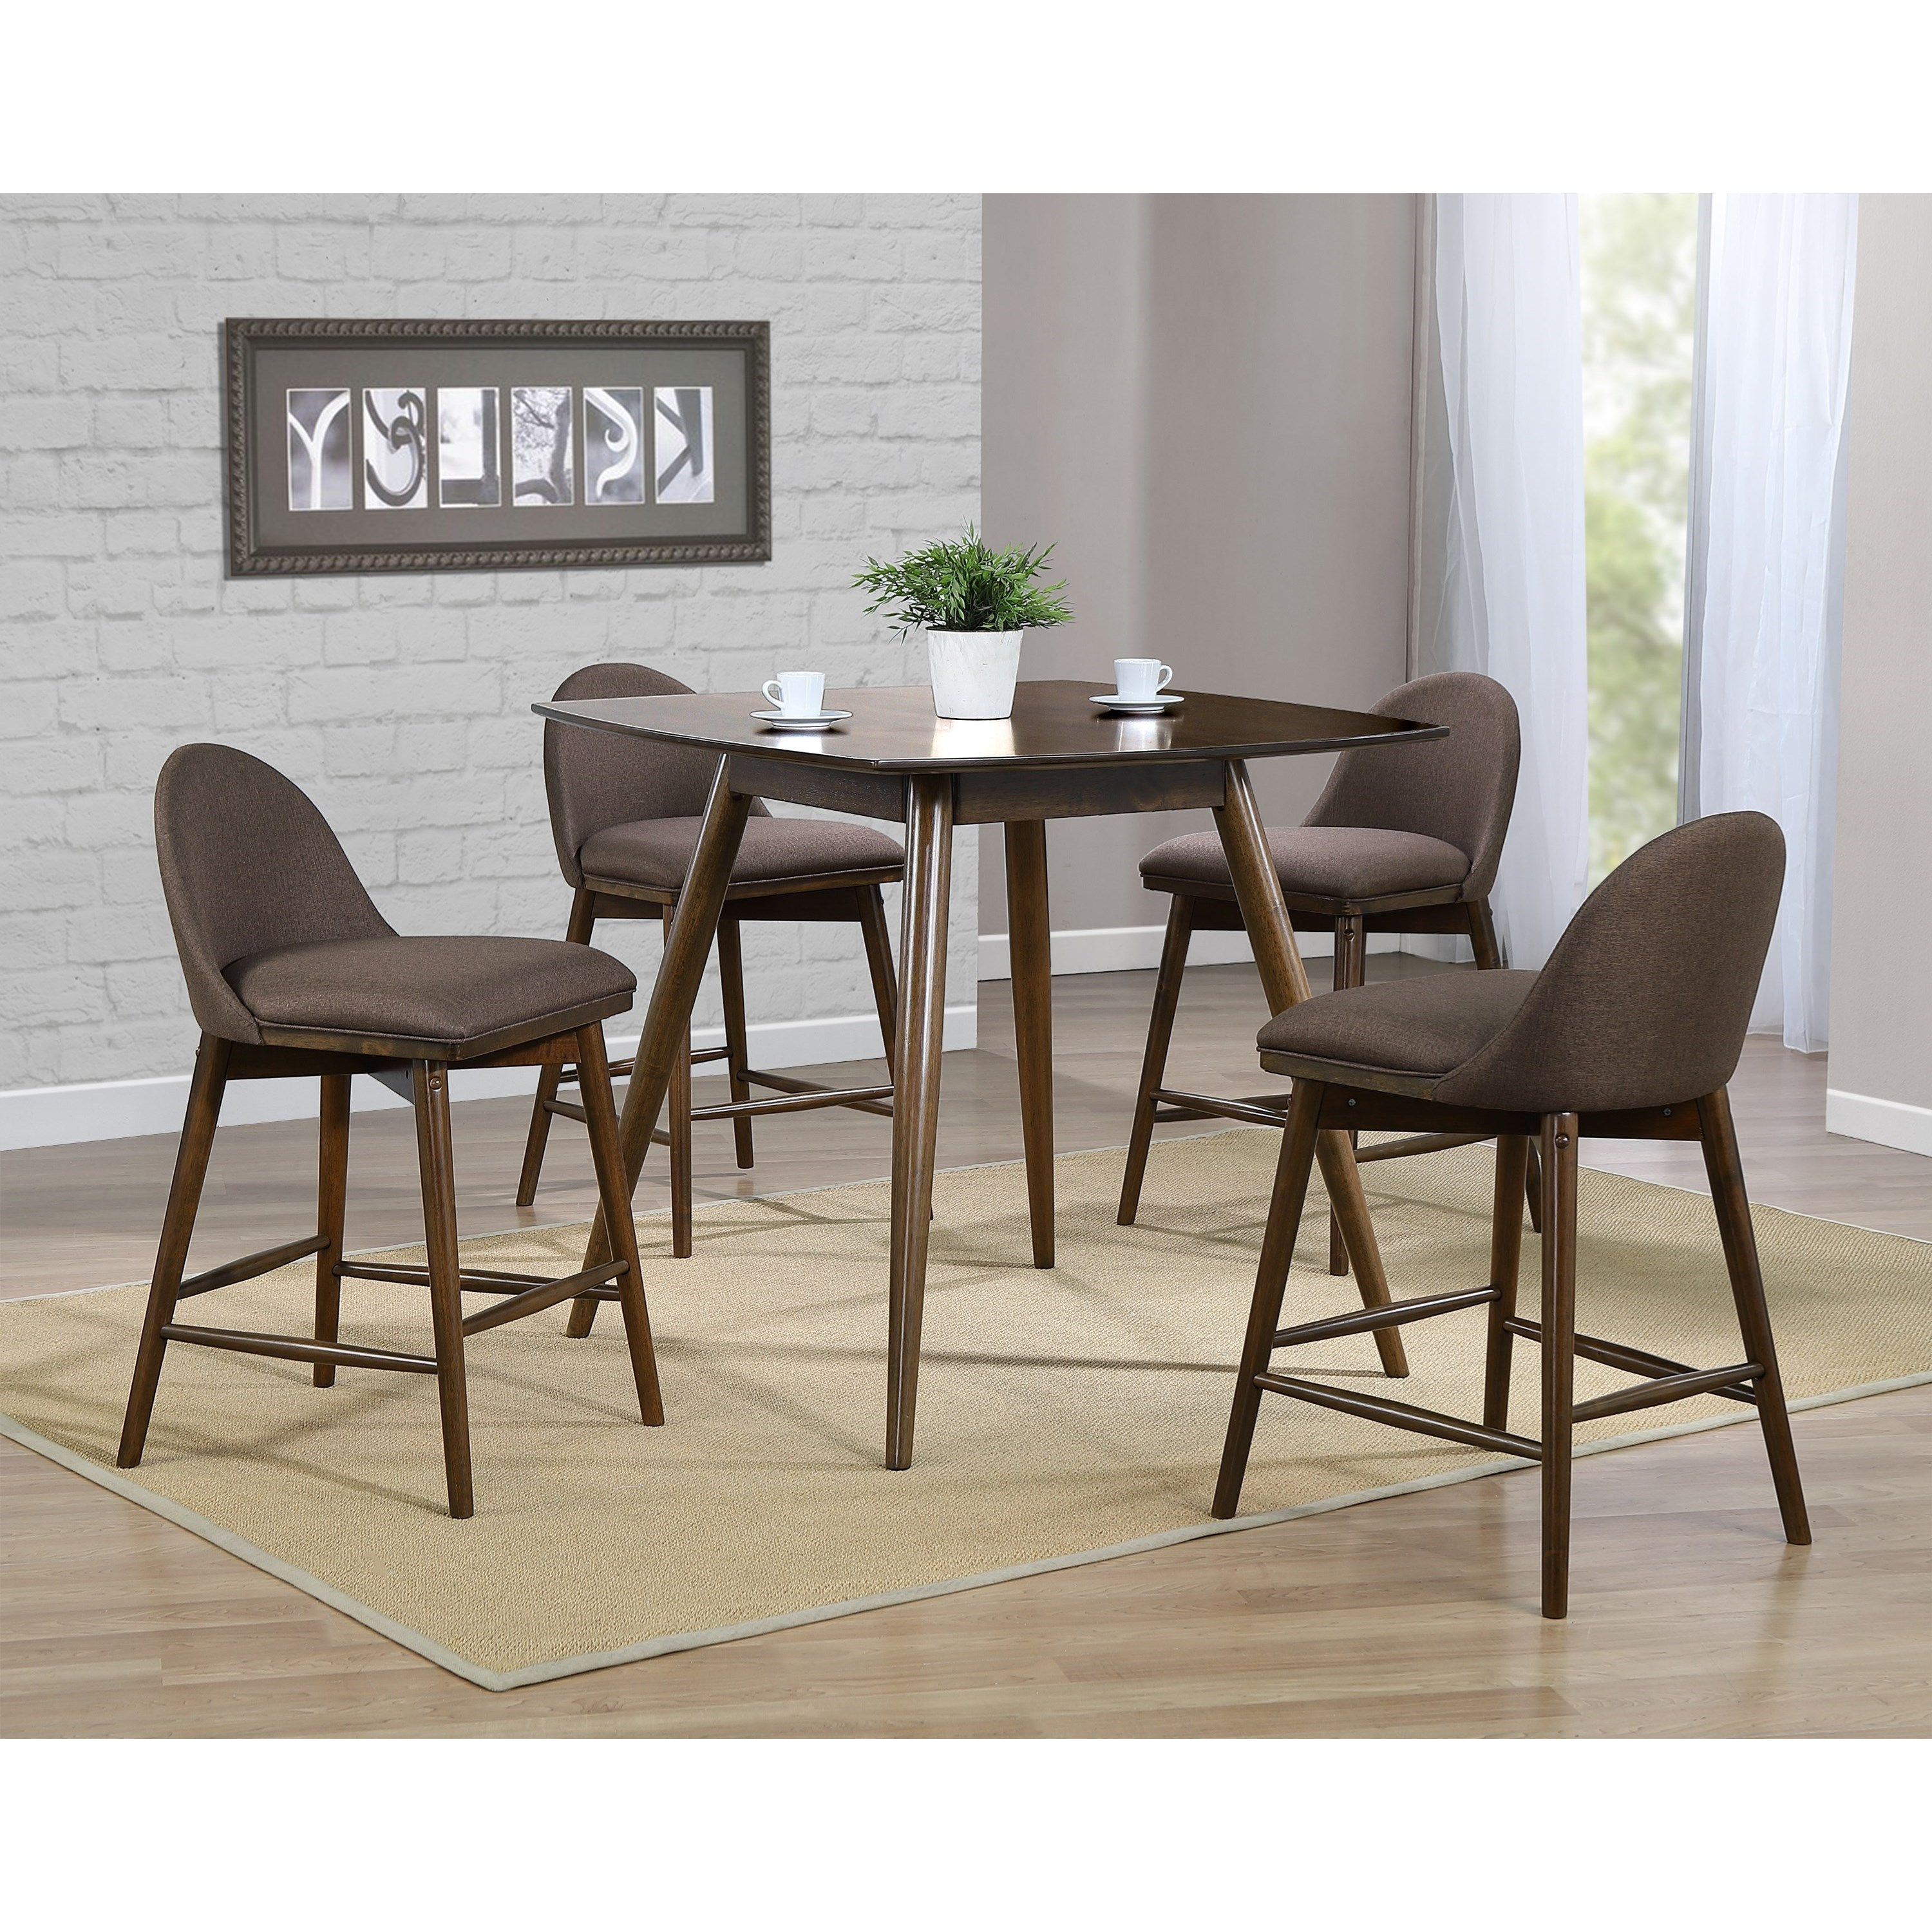 Picture of: Winners Only Santana Mid Century Modern 5 Piece Counter Height Table And Chair Set With Upholstered Seats Conlin S Furniture Pub Table And Stool Sets